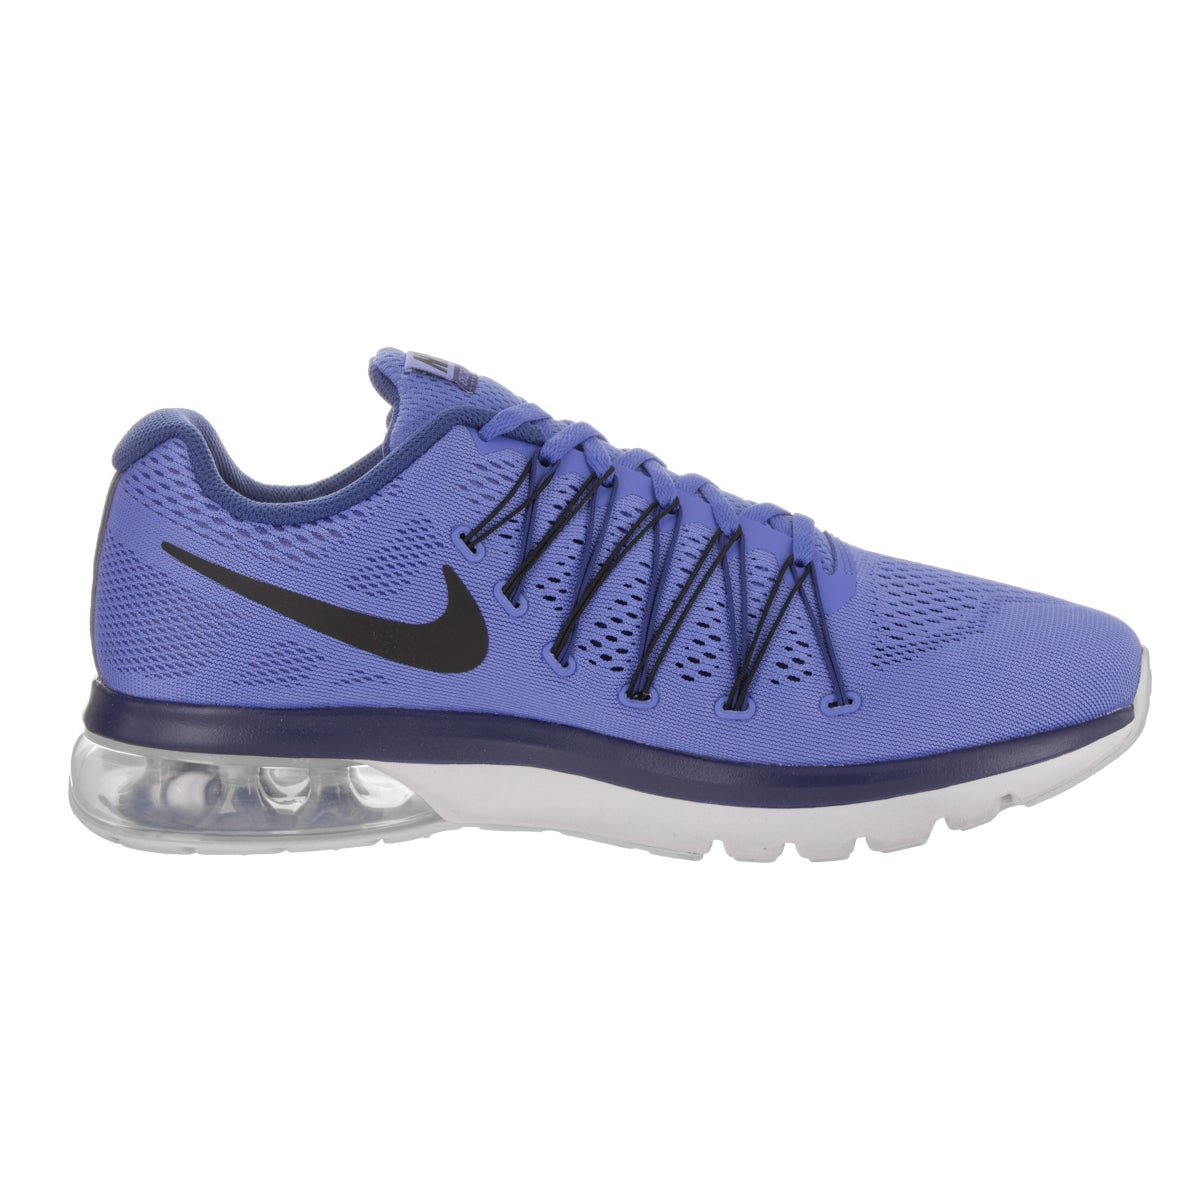 5bff3710076f4 Shop Nike Men s Air Max Excellerate 5 Running Shoe - Free Shipping Today -  Overstock - 14427941